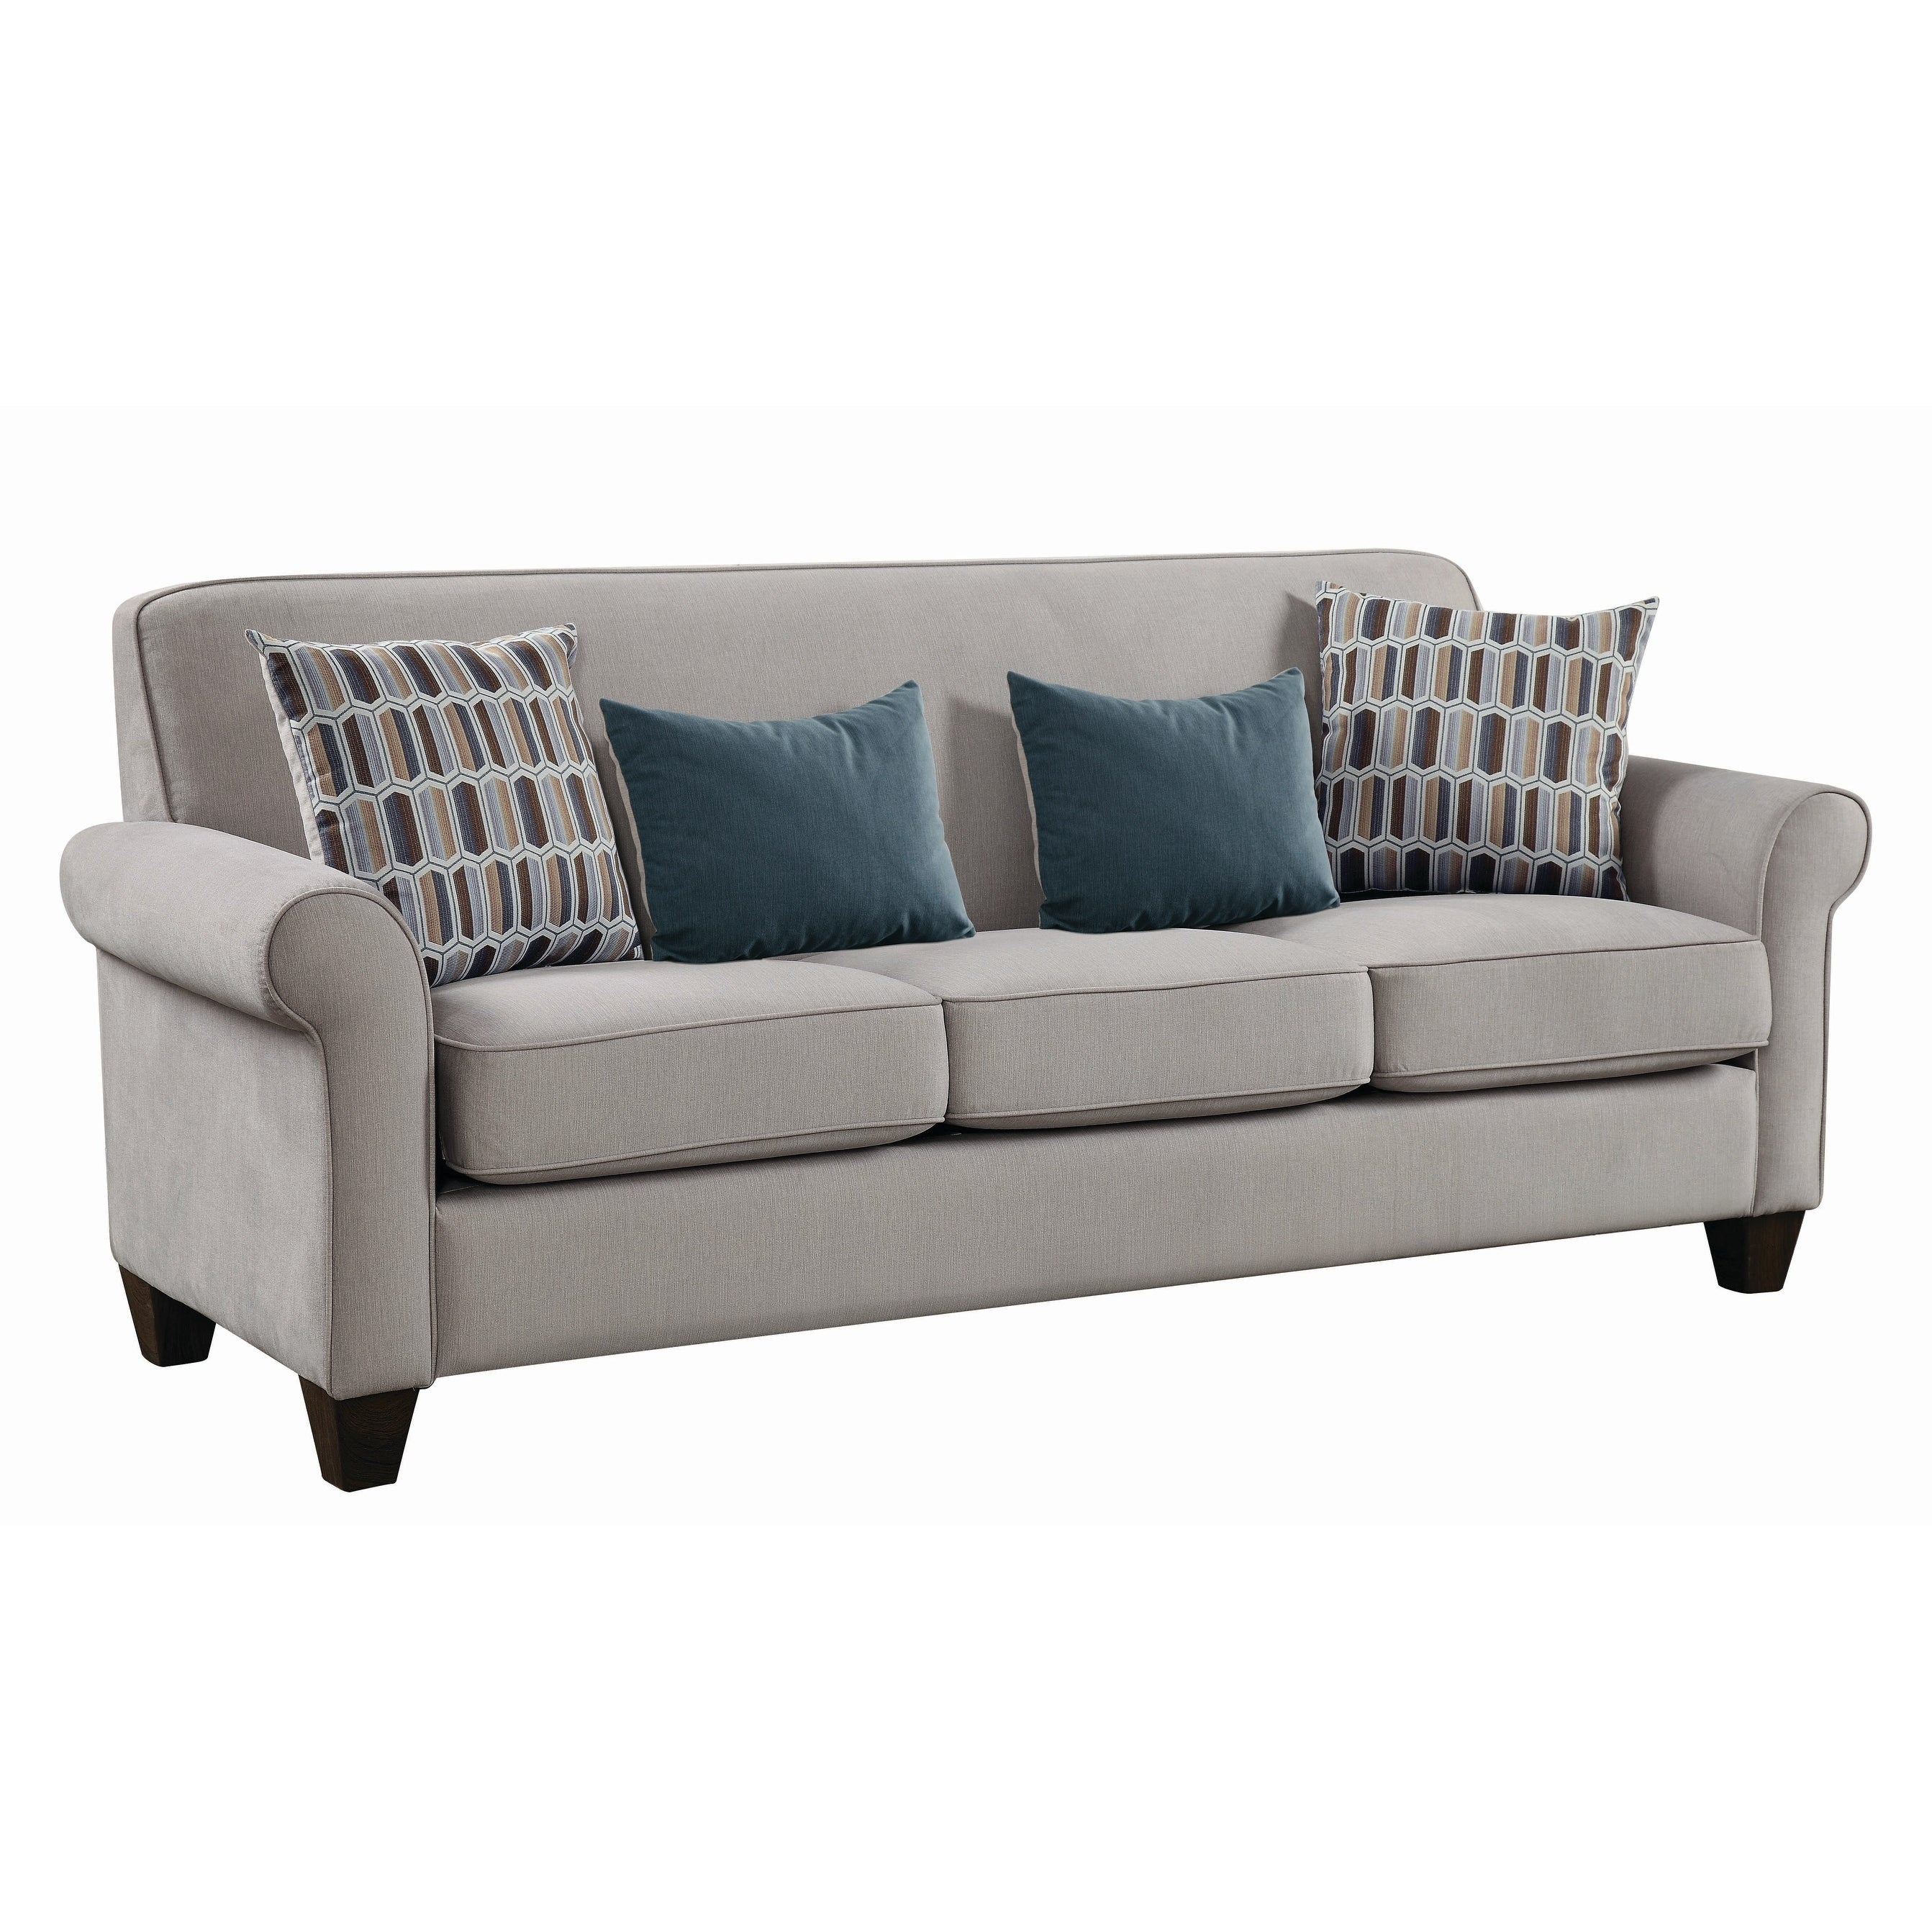 Beige Transitional Sofas Couches Online At Our Best Living Room Furniture Deals